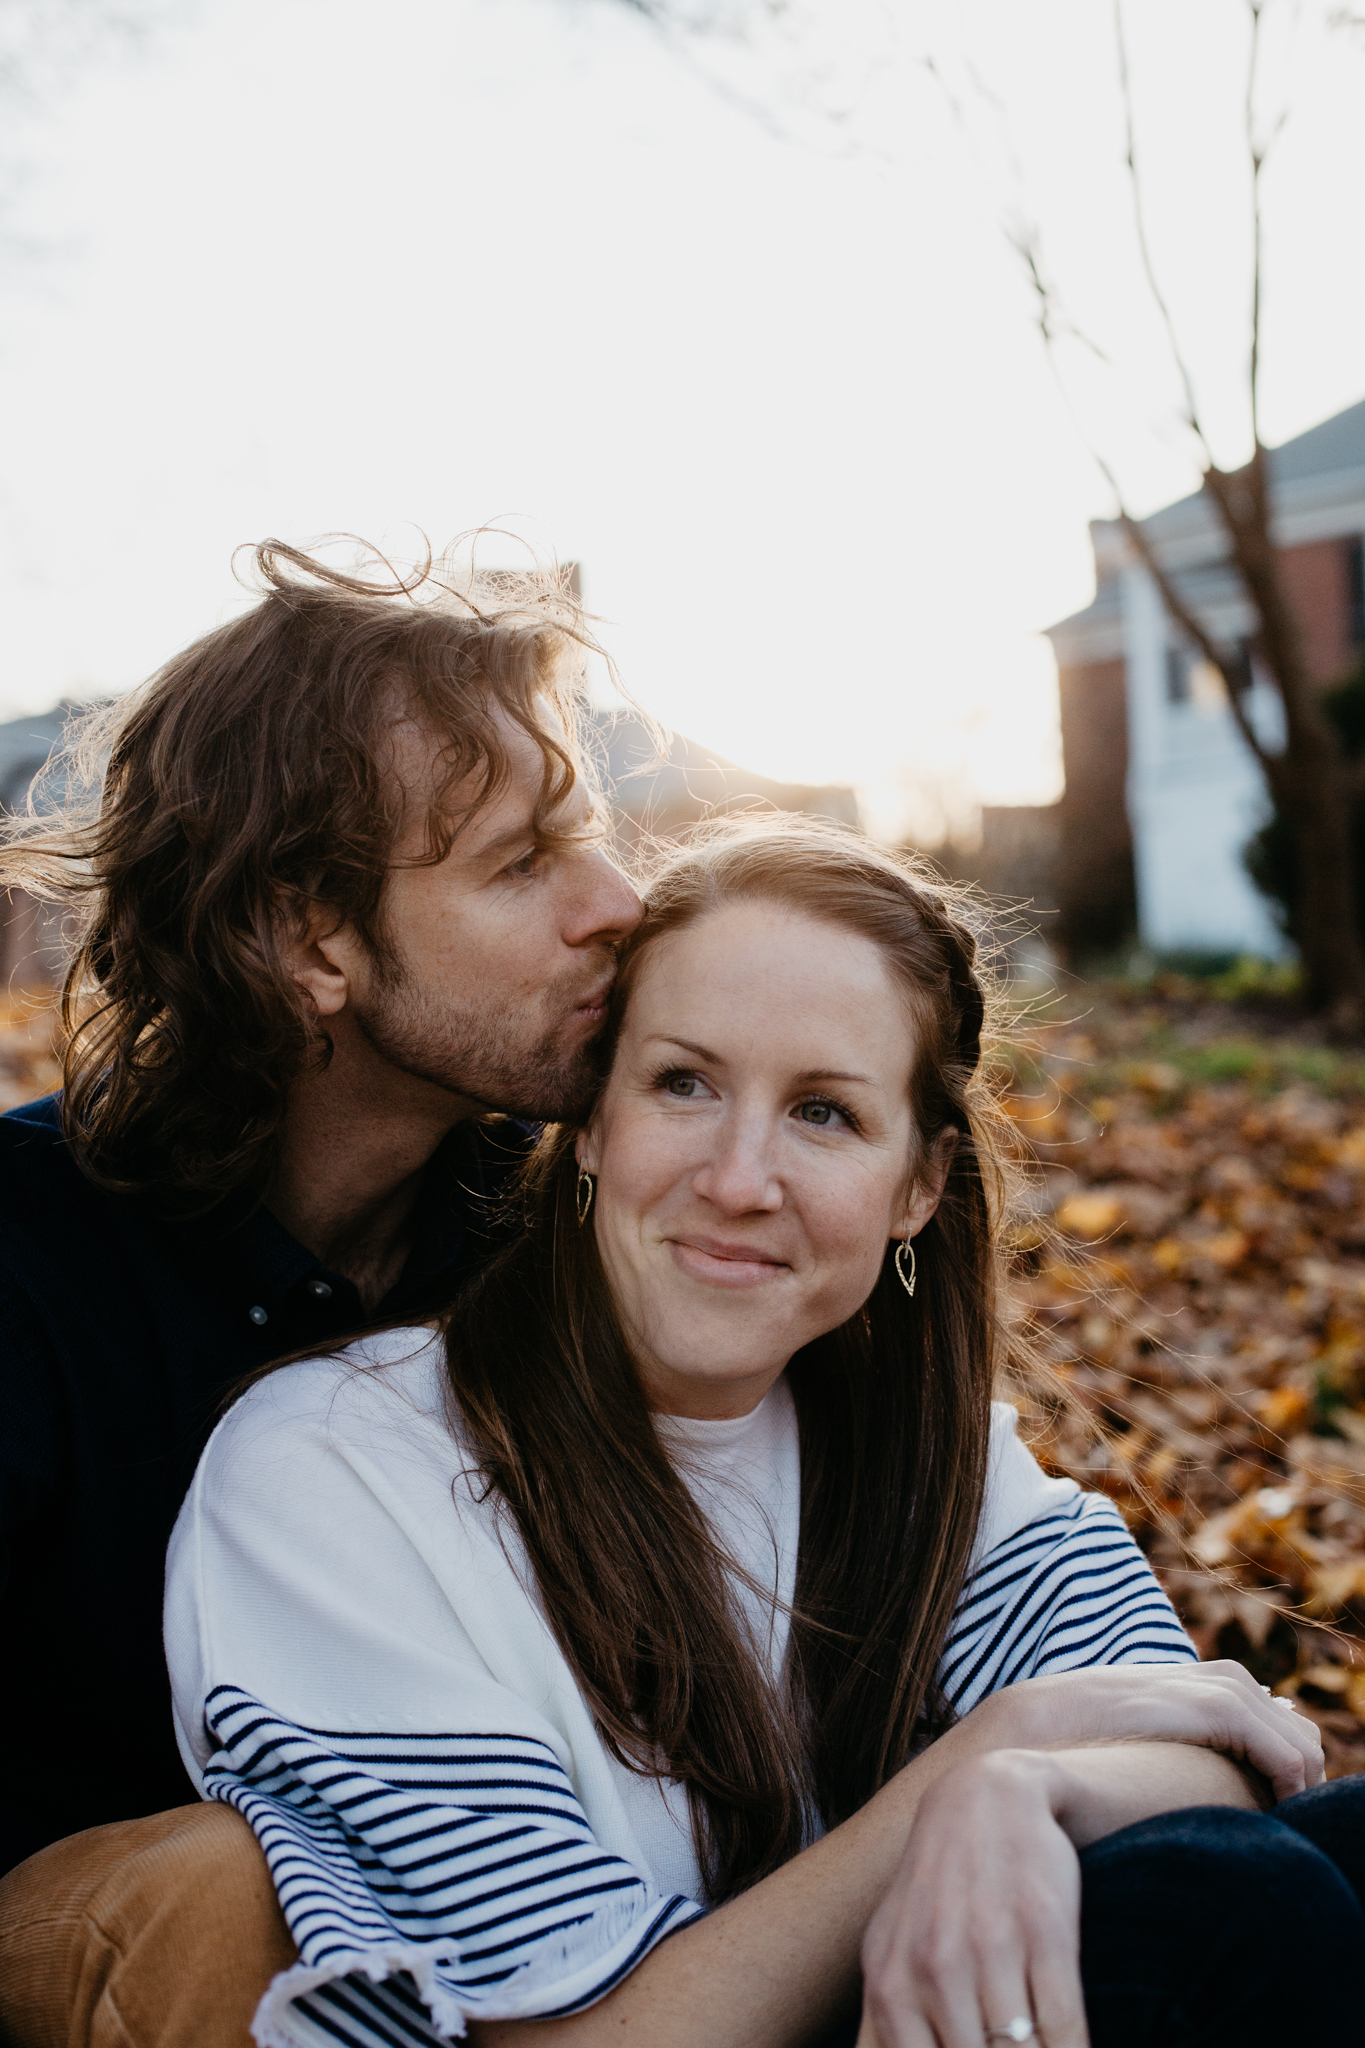 181116_Megan-Andrew-Engagement_097.jpg